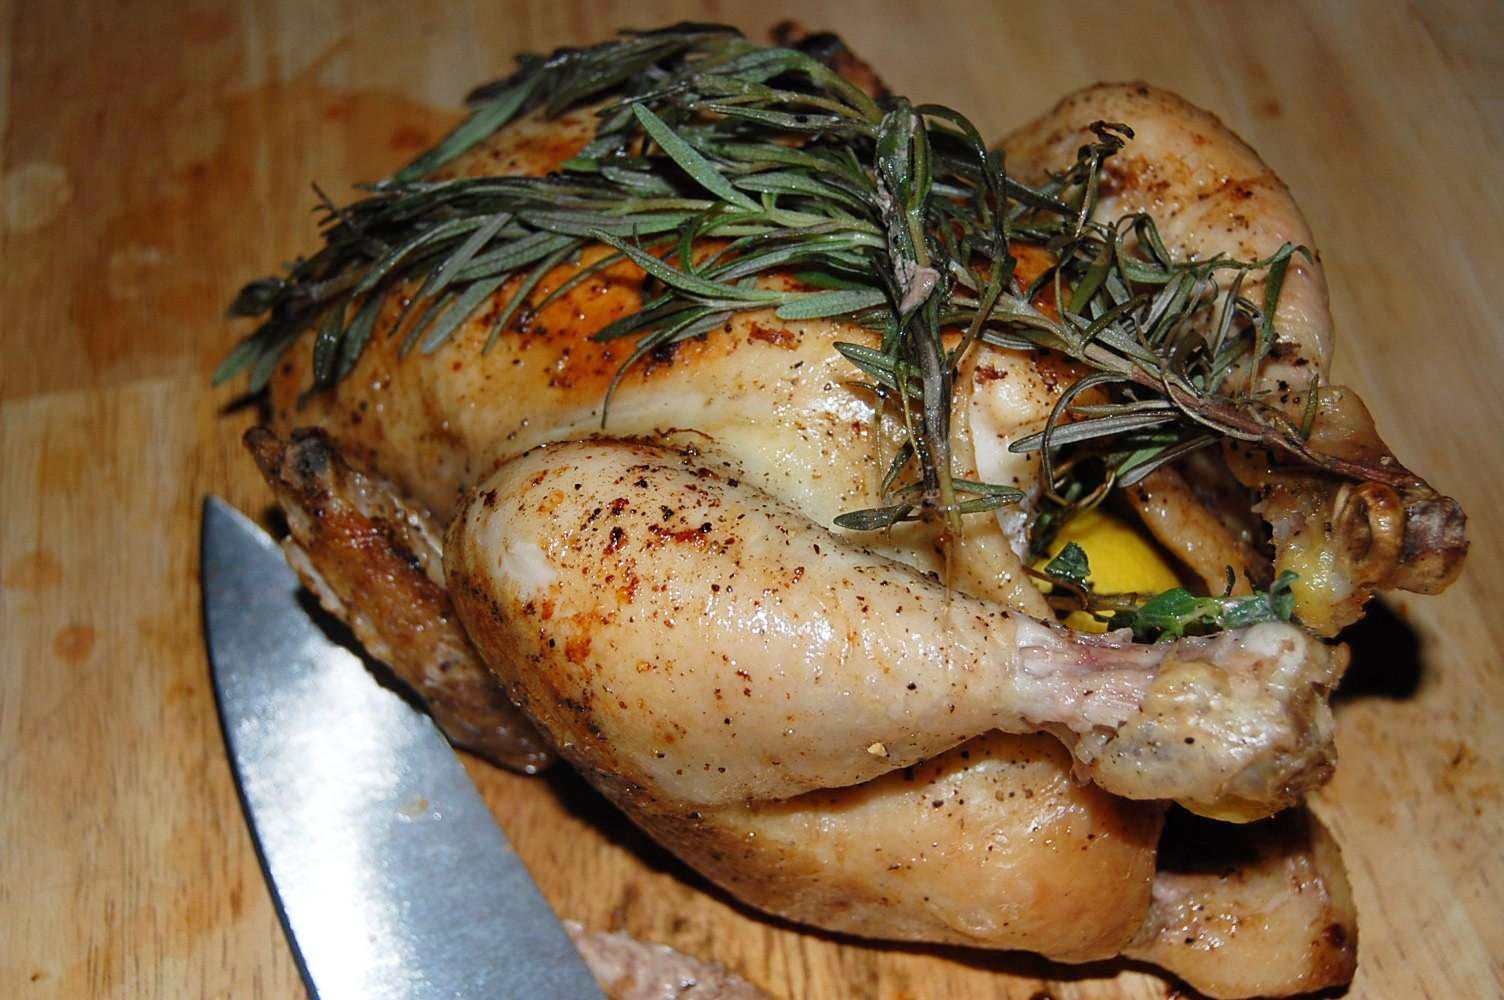 Turkey Fry Time Chart: Rosemary chicken.jpg - Wikimedia Commons,Chart